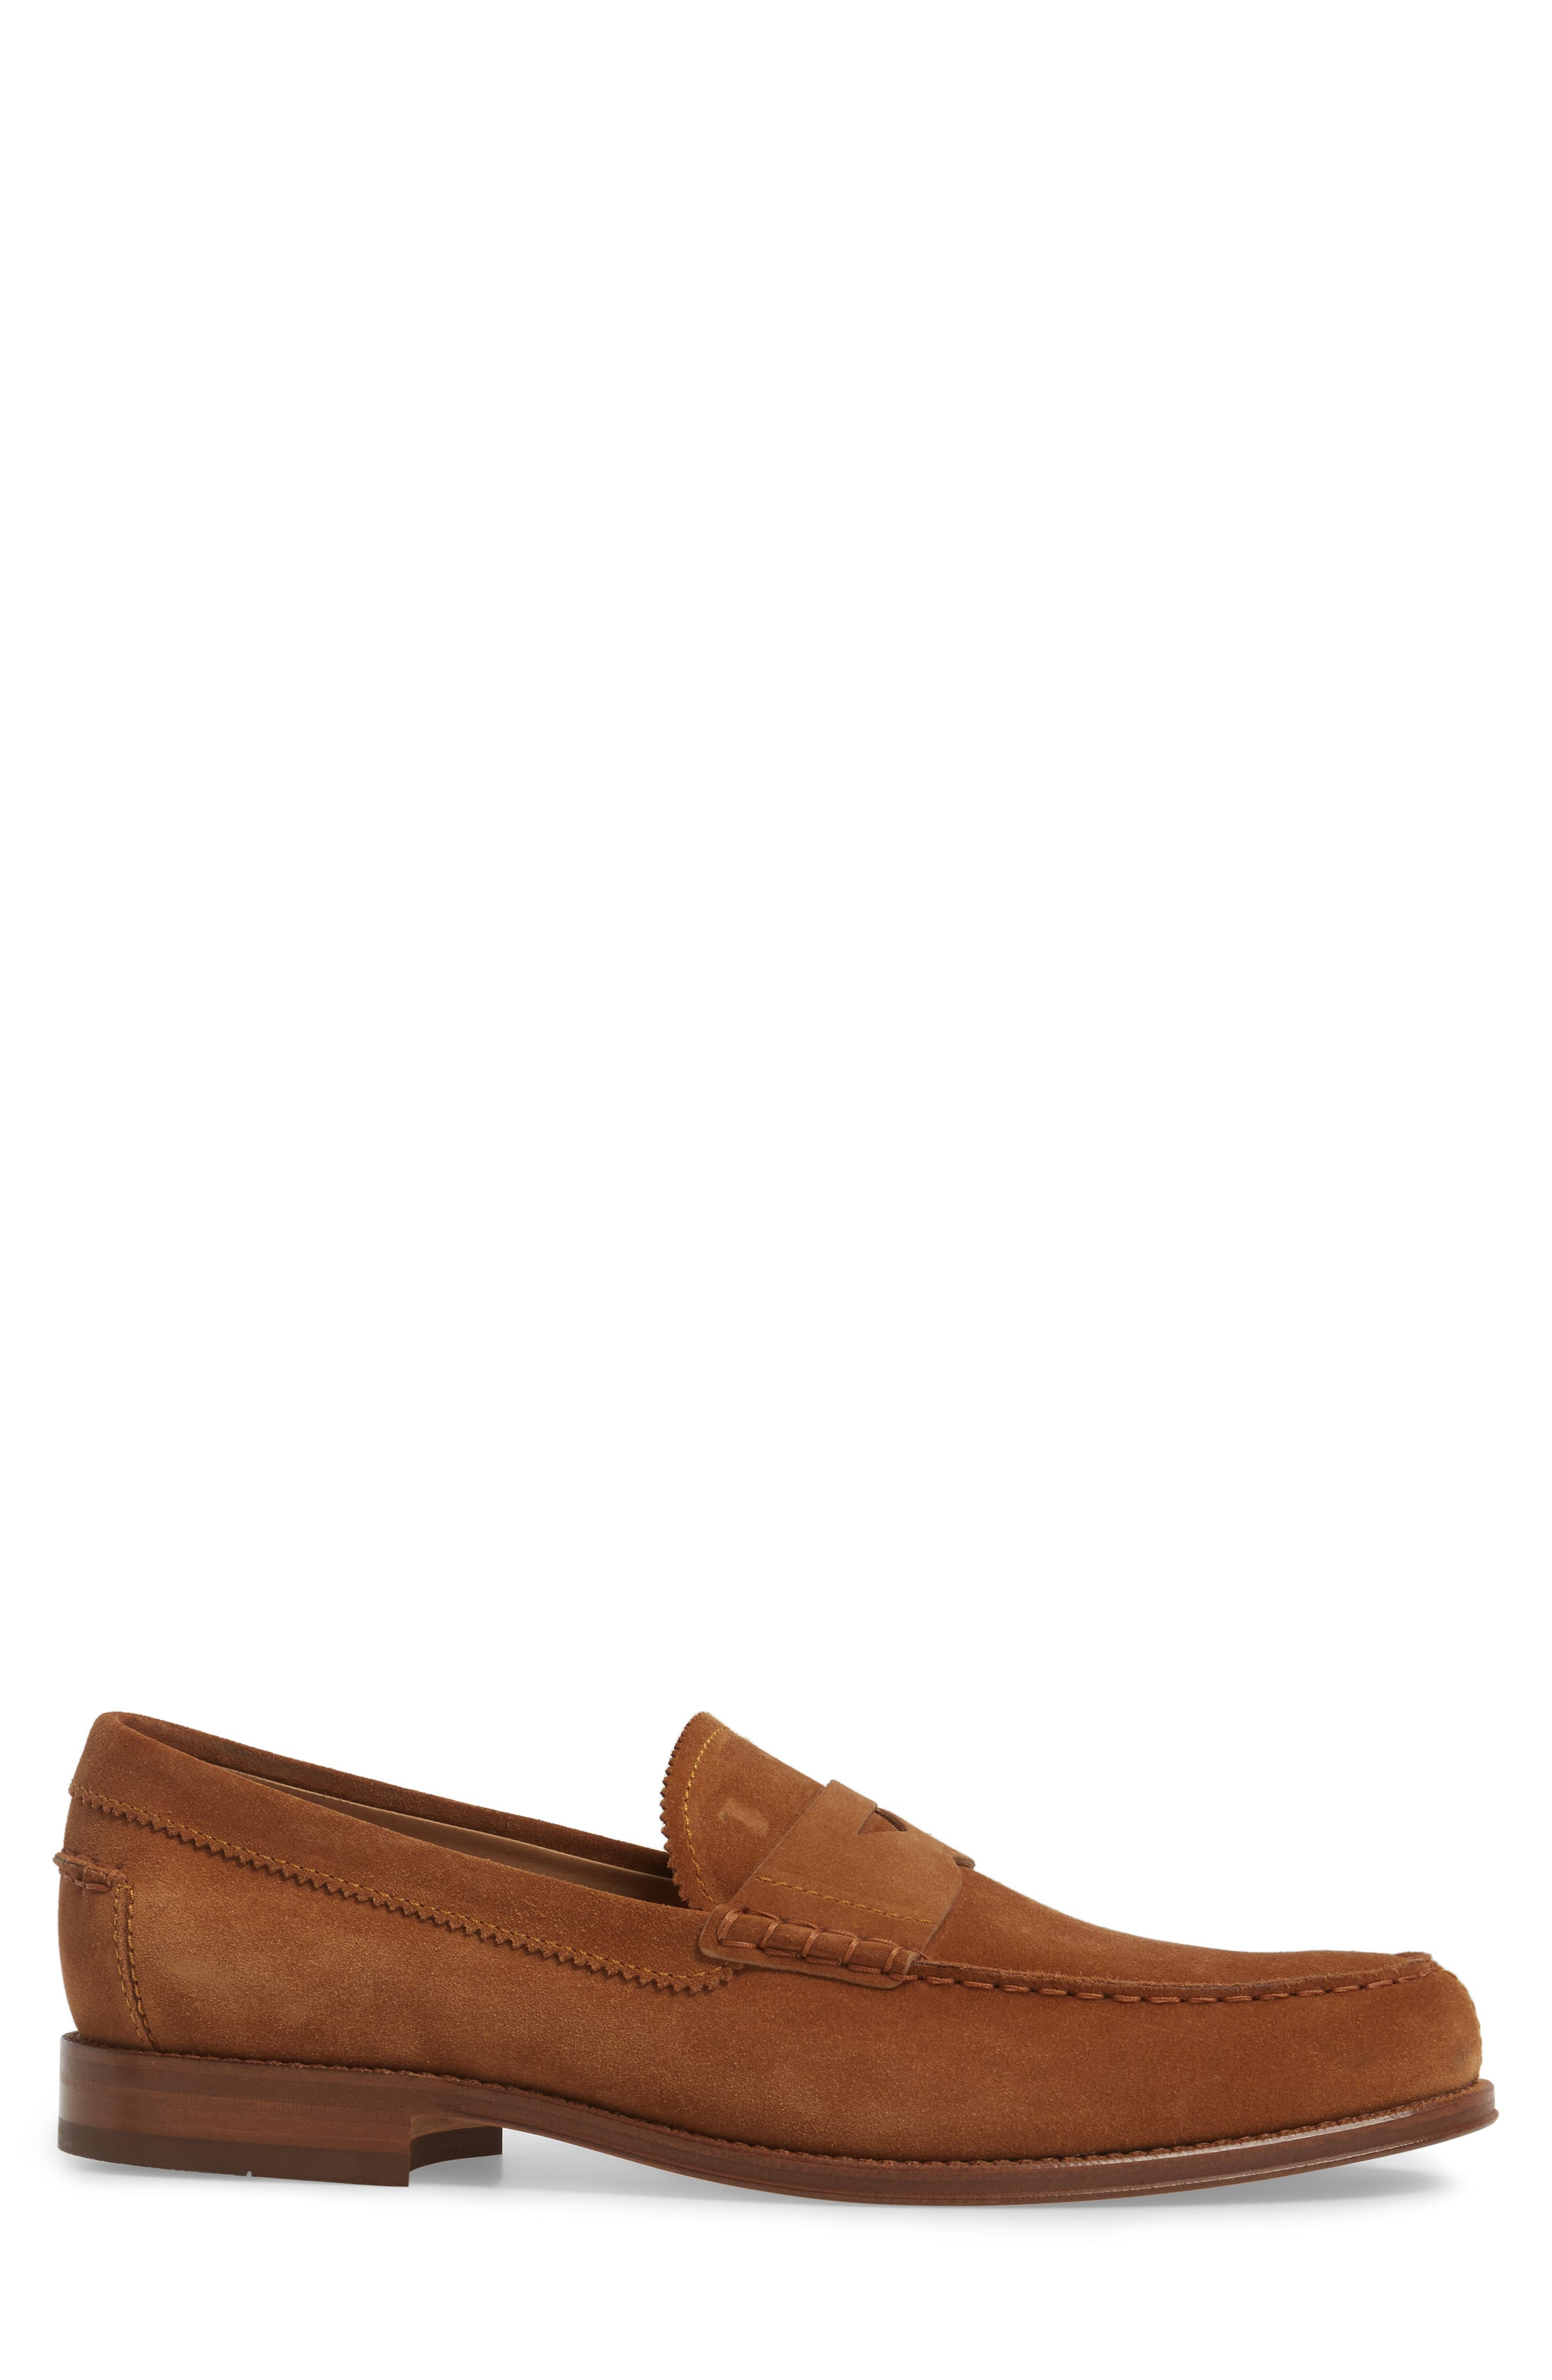 Suede Penny Loafer,                             Alternate thumbnail 5, color,